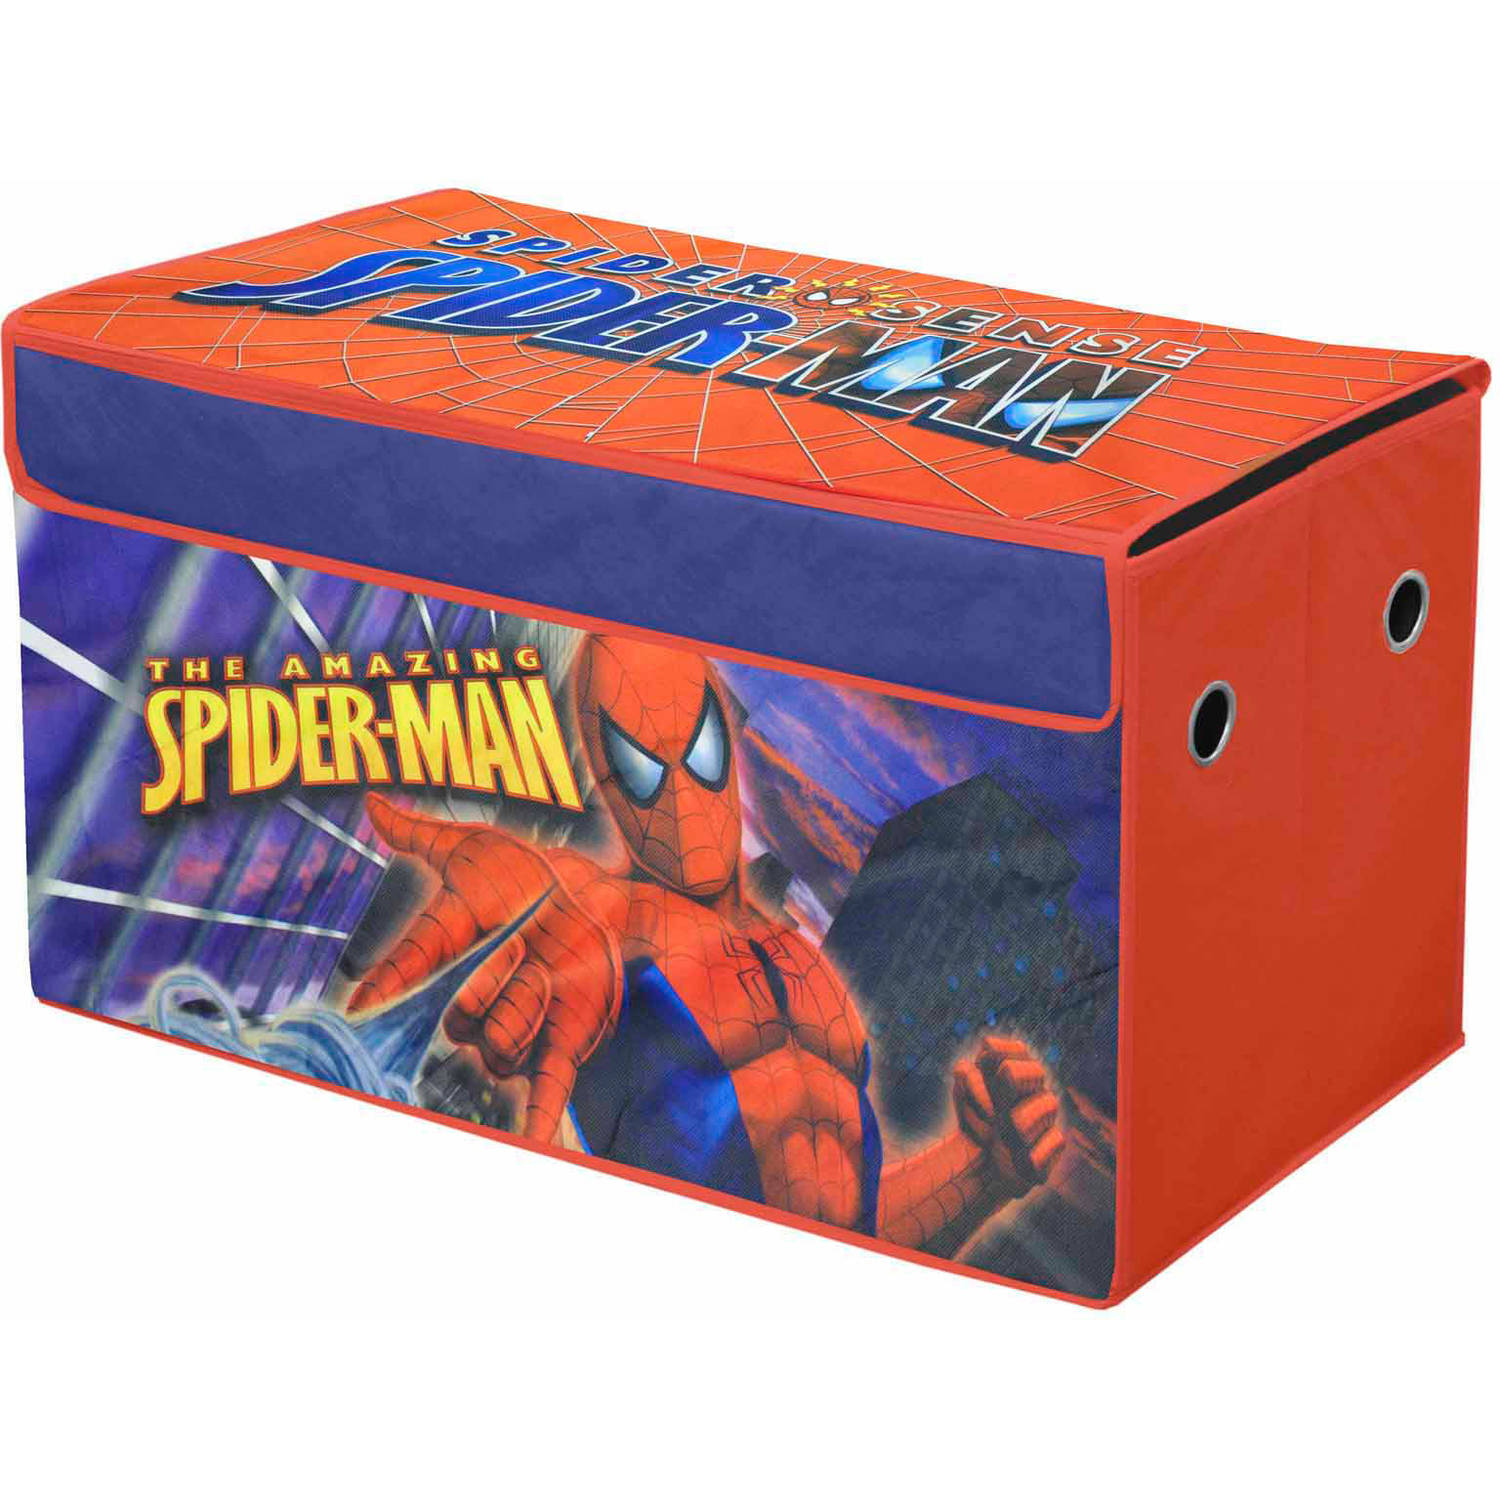 Spiderman Oversized Soft Collapsible Storage Toy Trunk